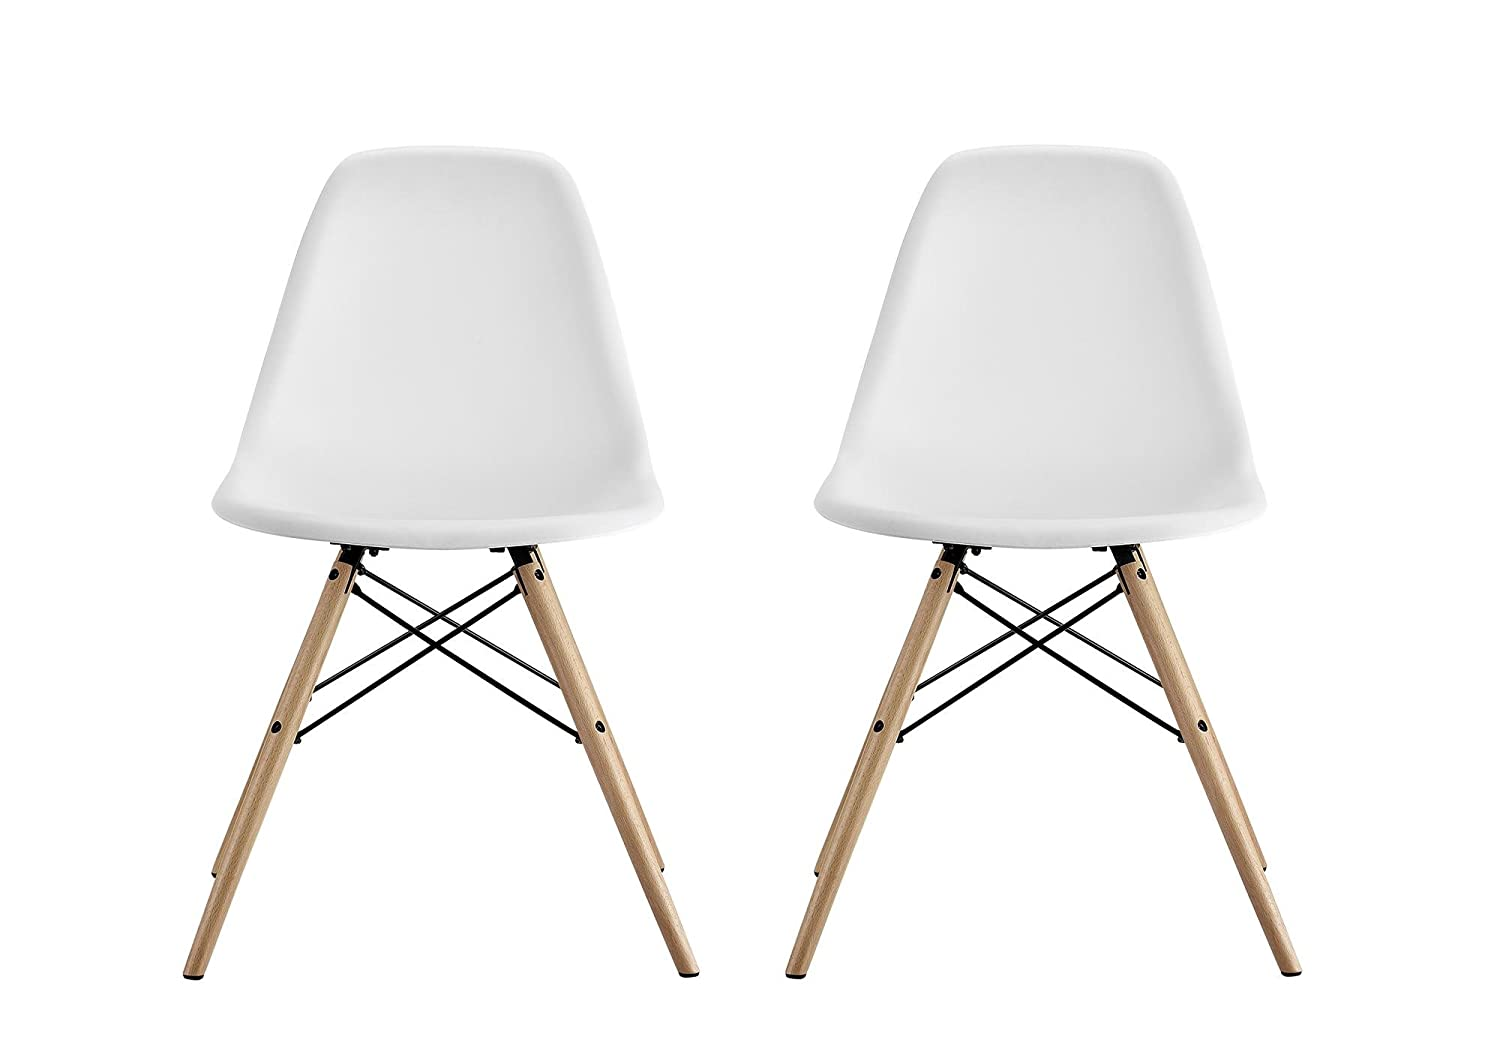 Amazon.com: DHP Mid Century Modern Chair With Wood Legs, Set Of Two,  Lightweight, White: Kitchen U0026 Dining